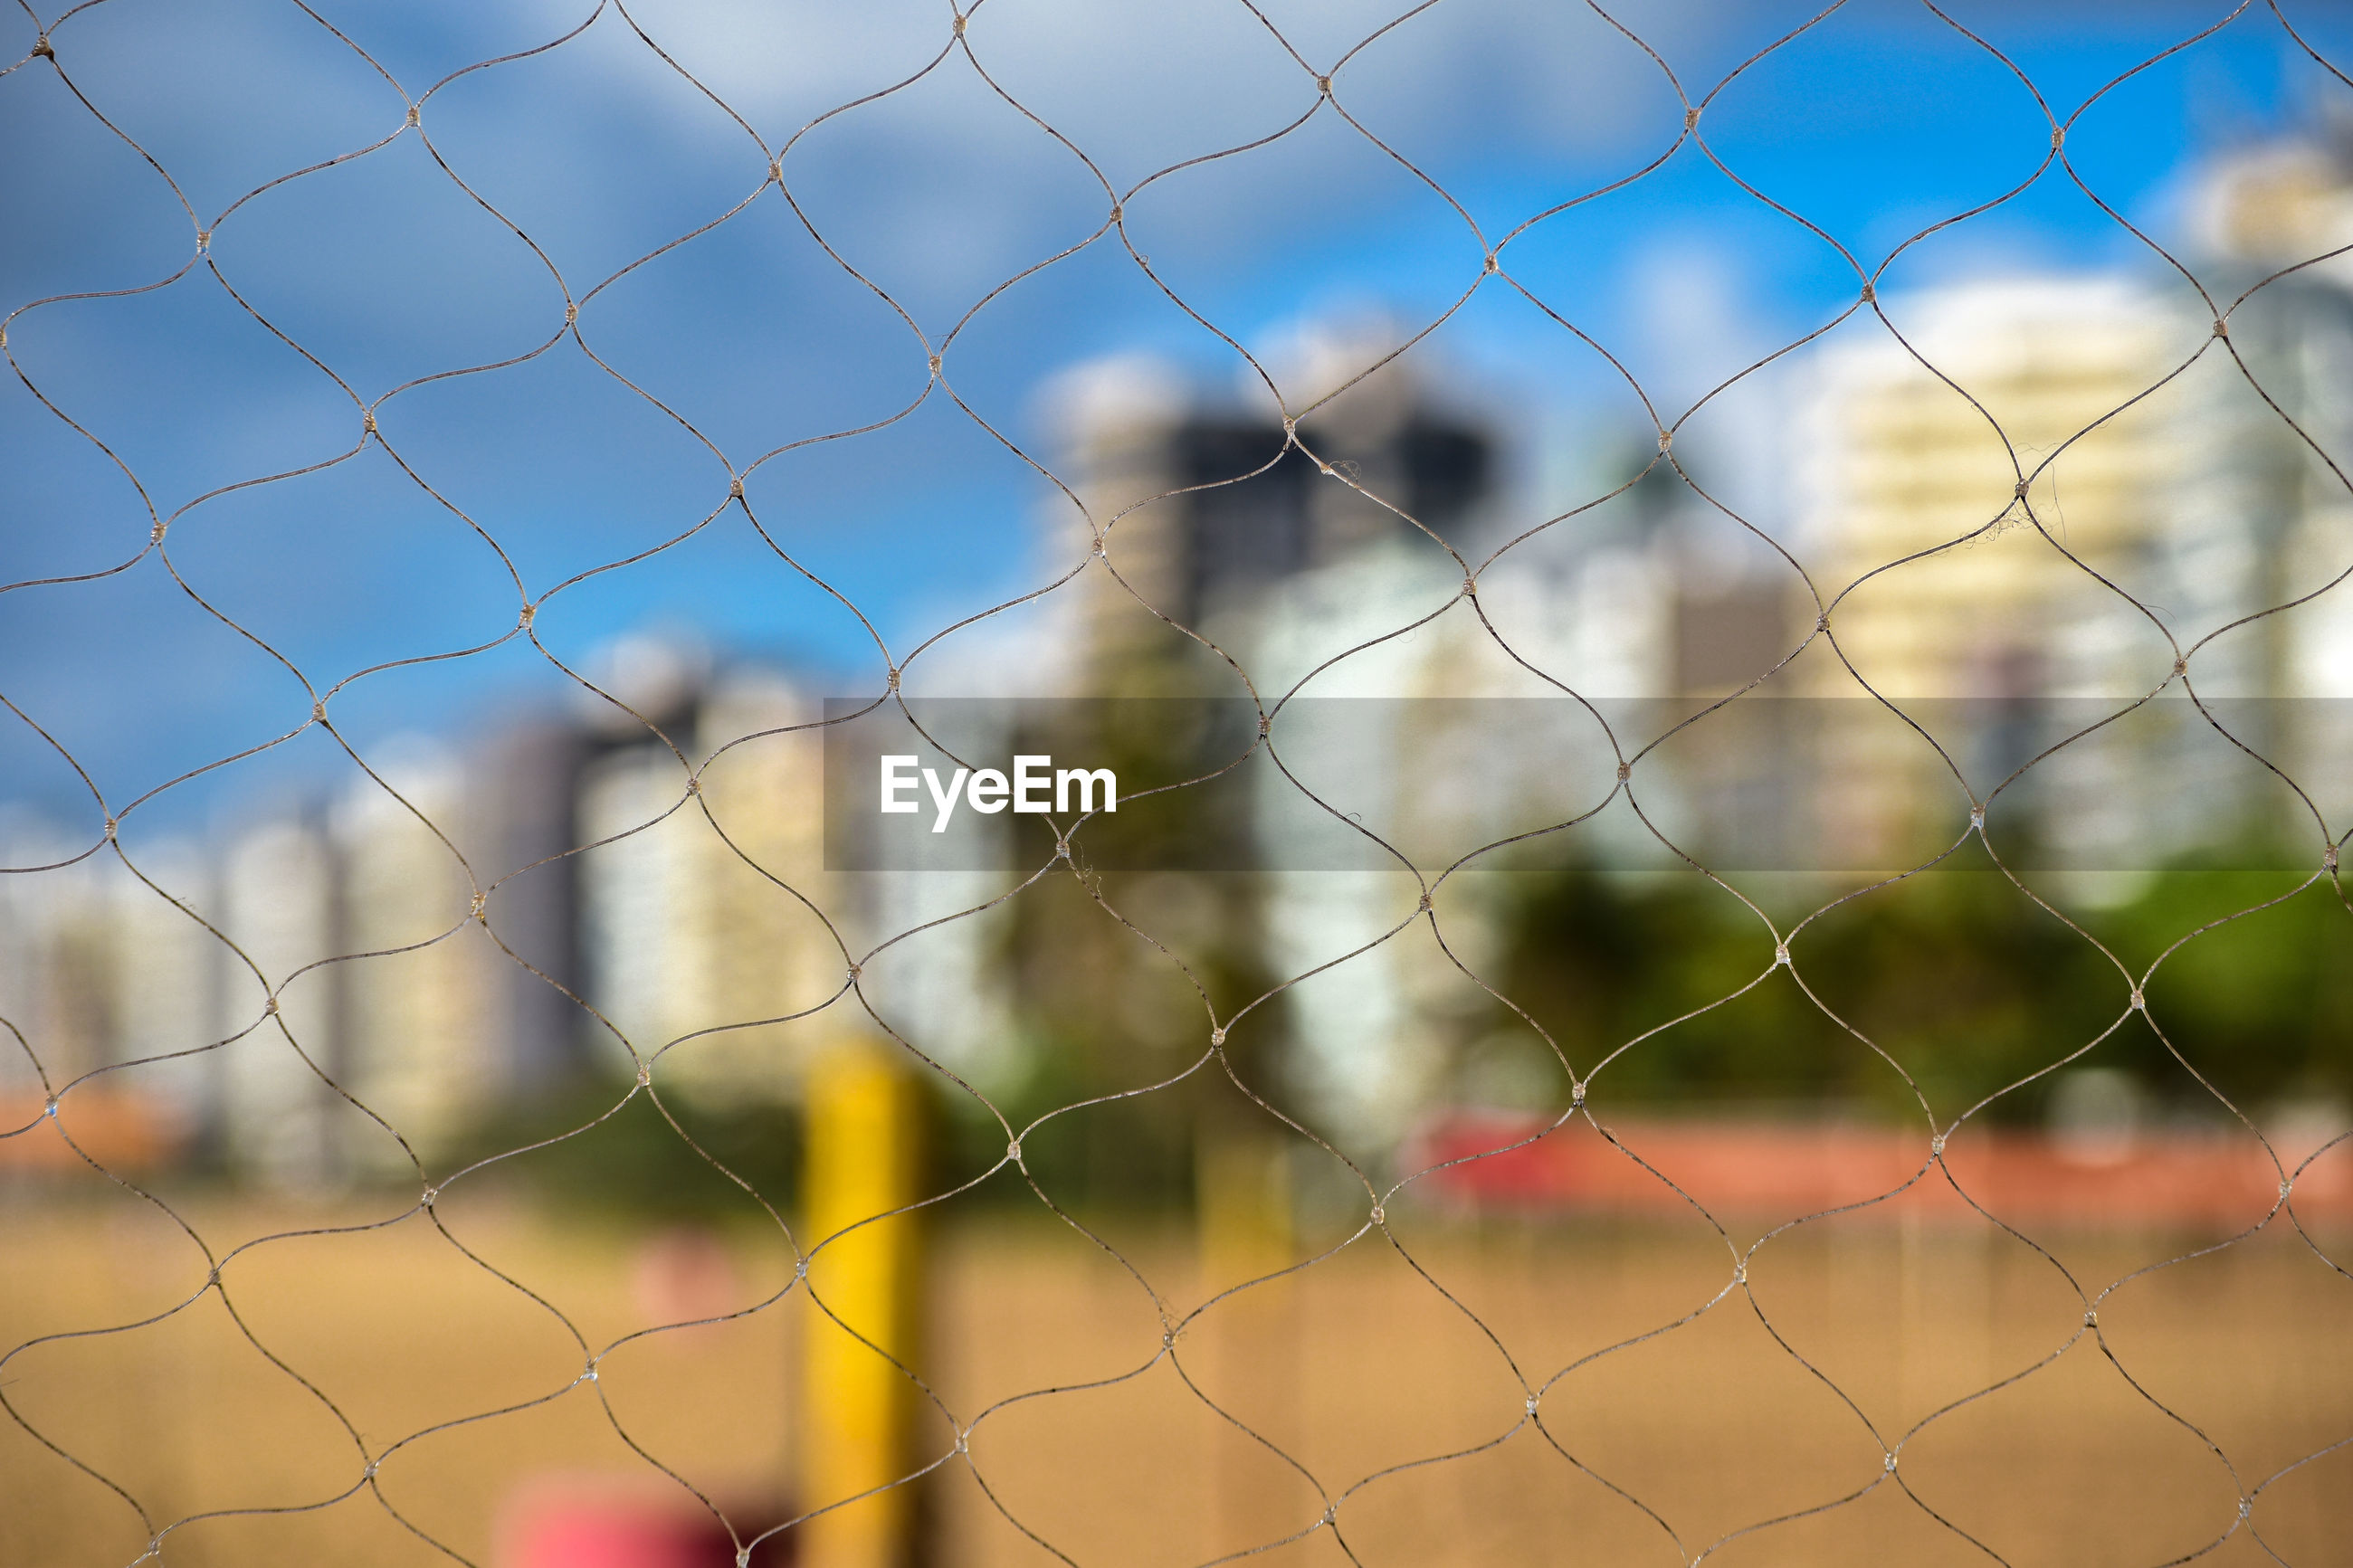 Full frame shot of fence against the sky and cityscape.